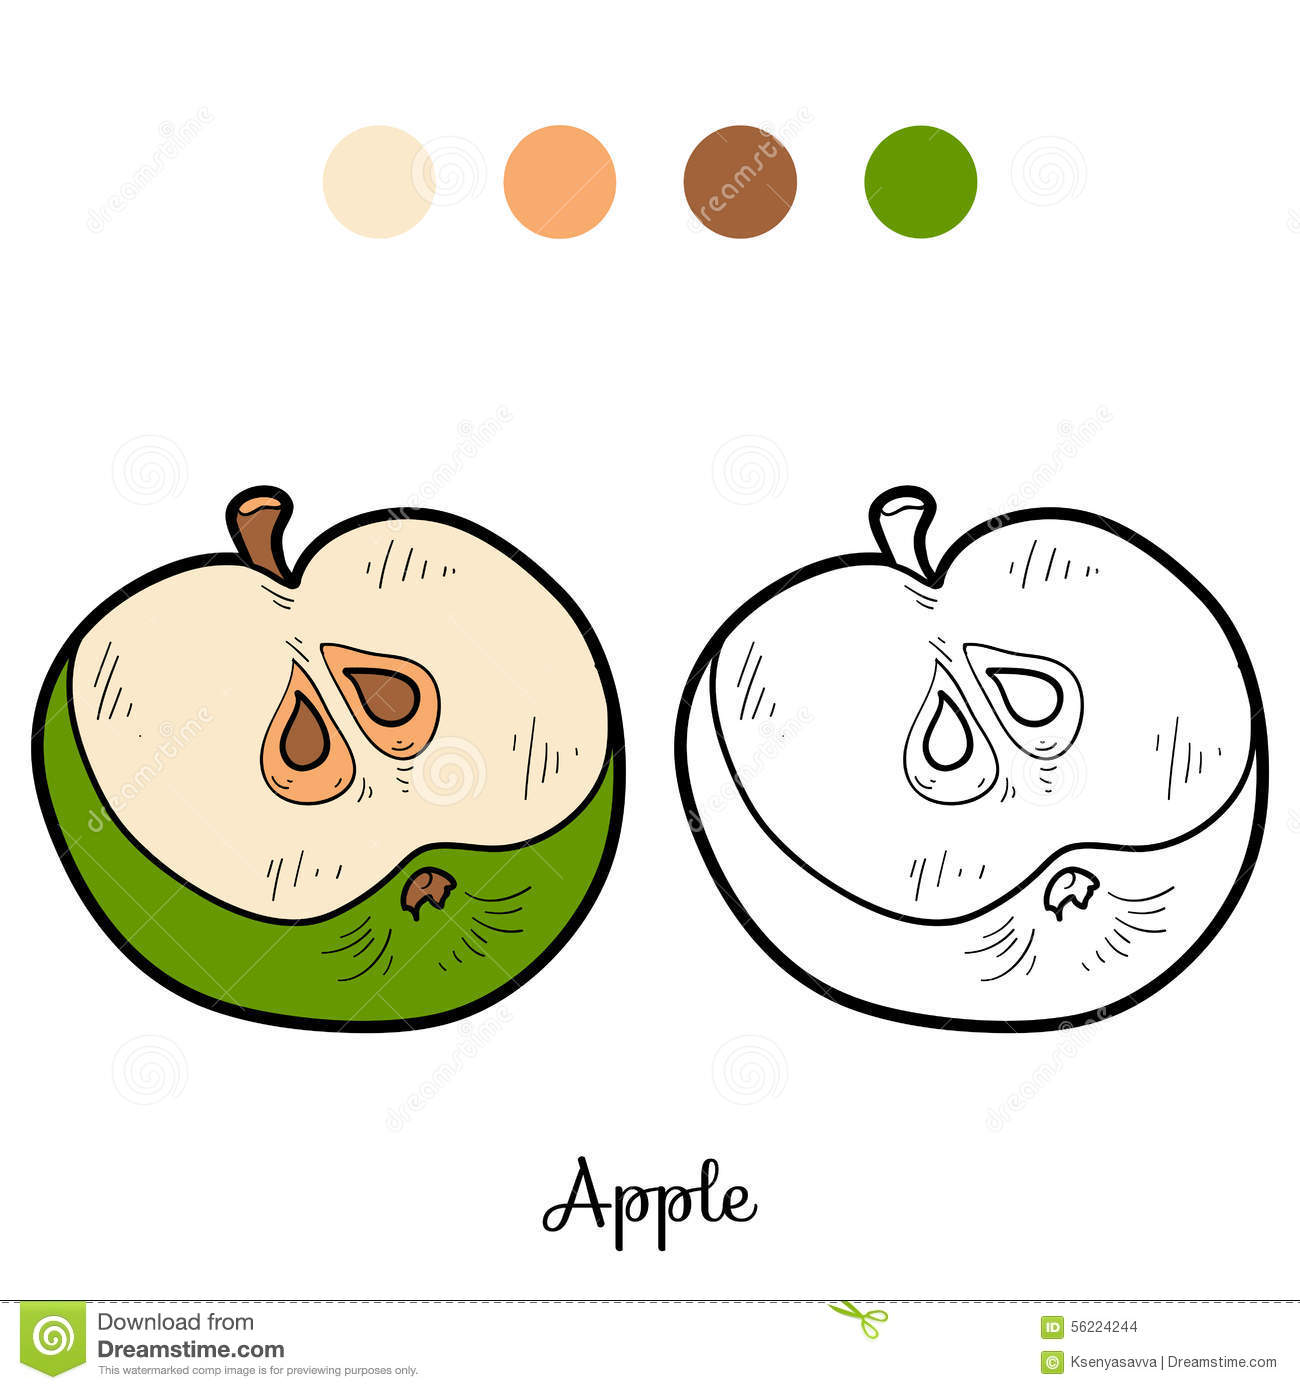 Coloring book pictures of vegetables - Coloring Book Fruits And Vegetables Apple Stock Images